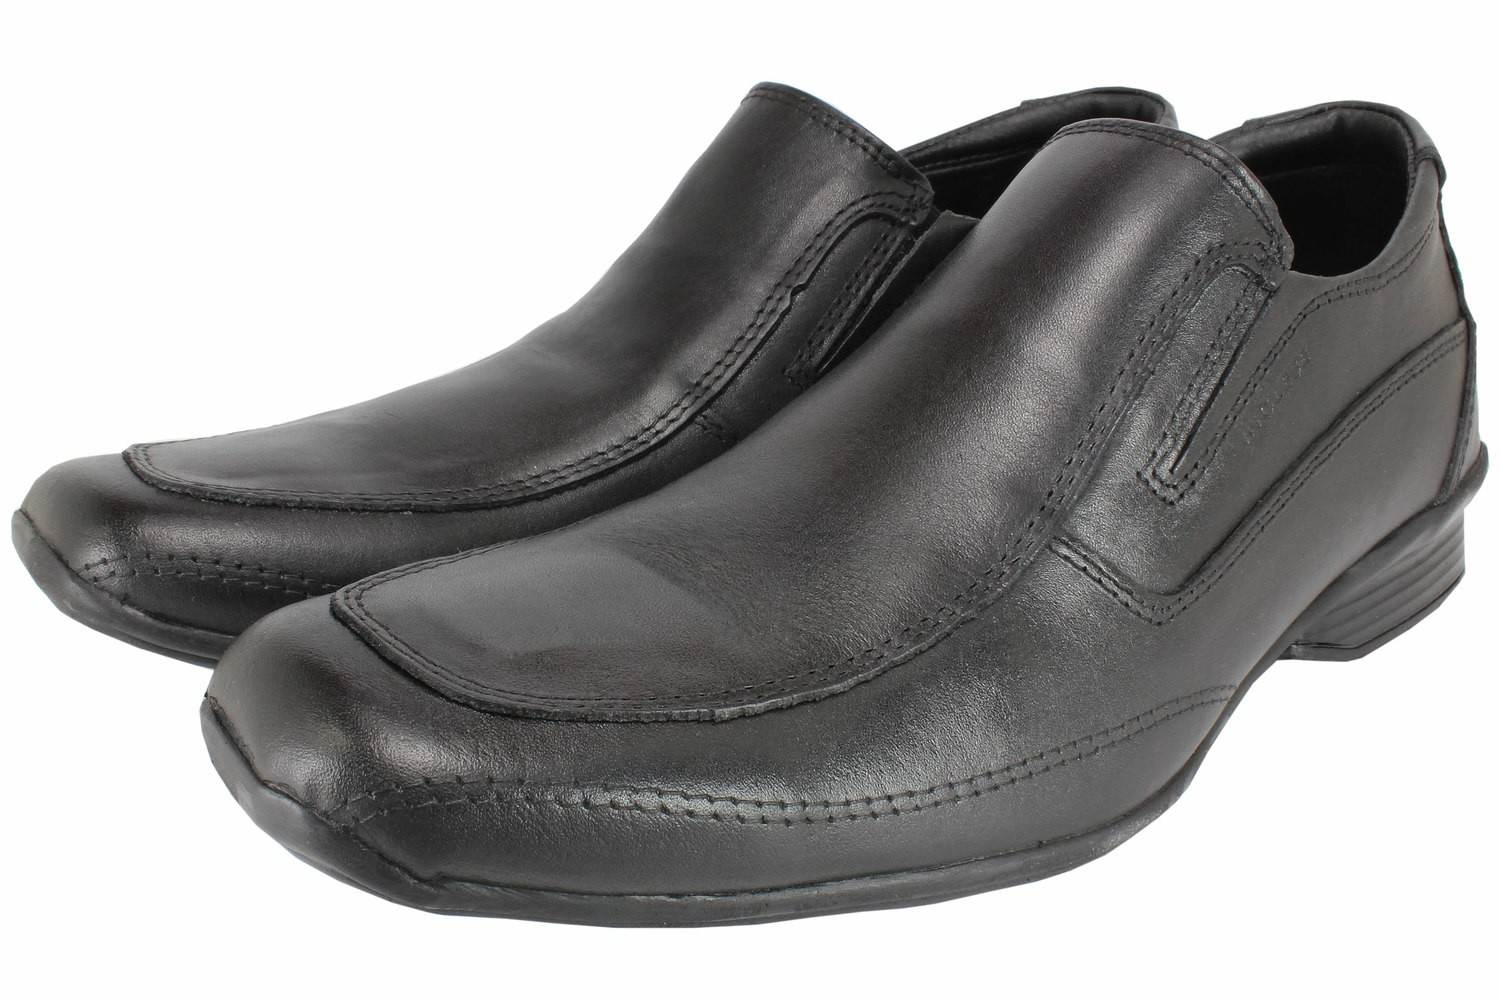 Mens Shoes Genuine Leather Black - SUGGESTED RETAIL PRICE $45.00 - WHOLESALE PRICE $8 - Minimum purchase 11 pairs